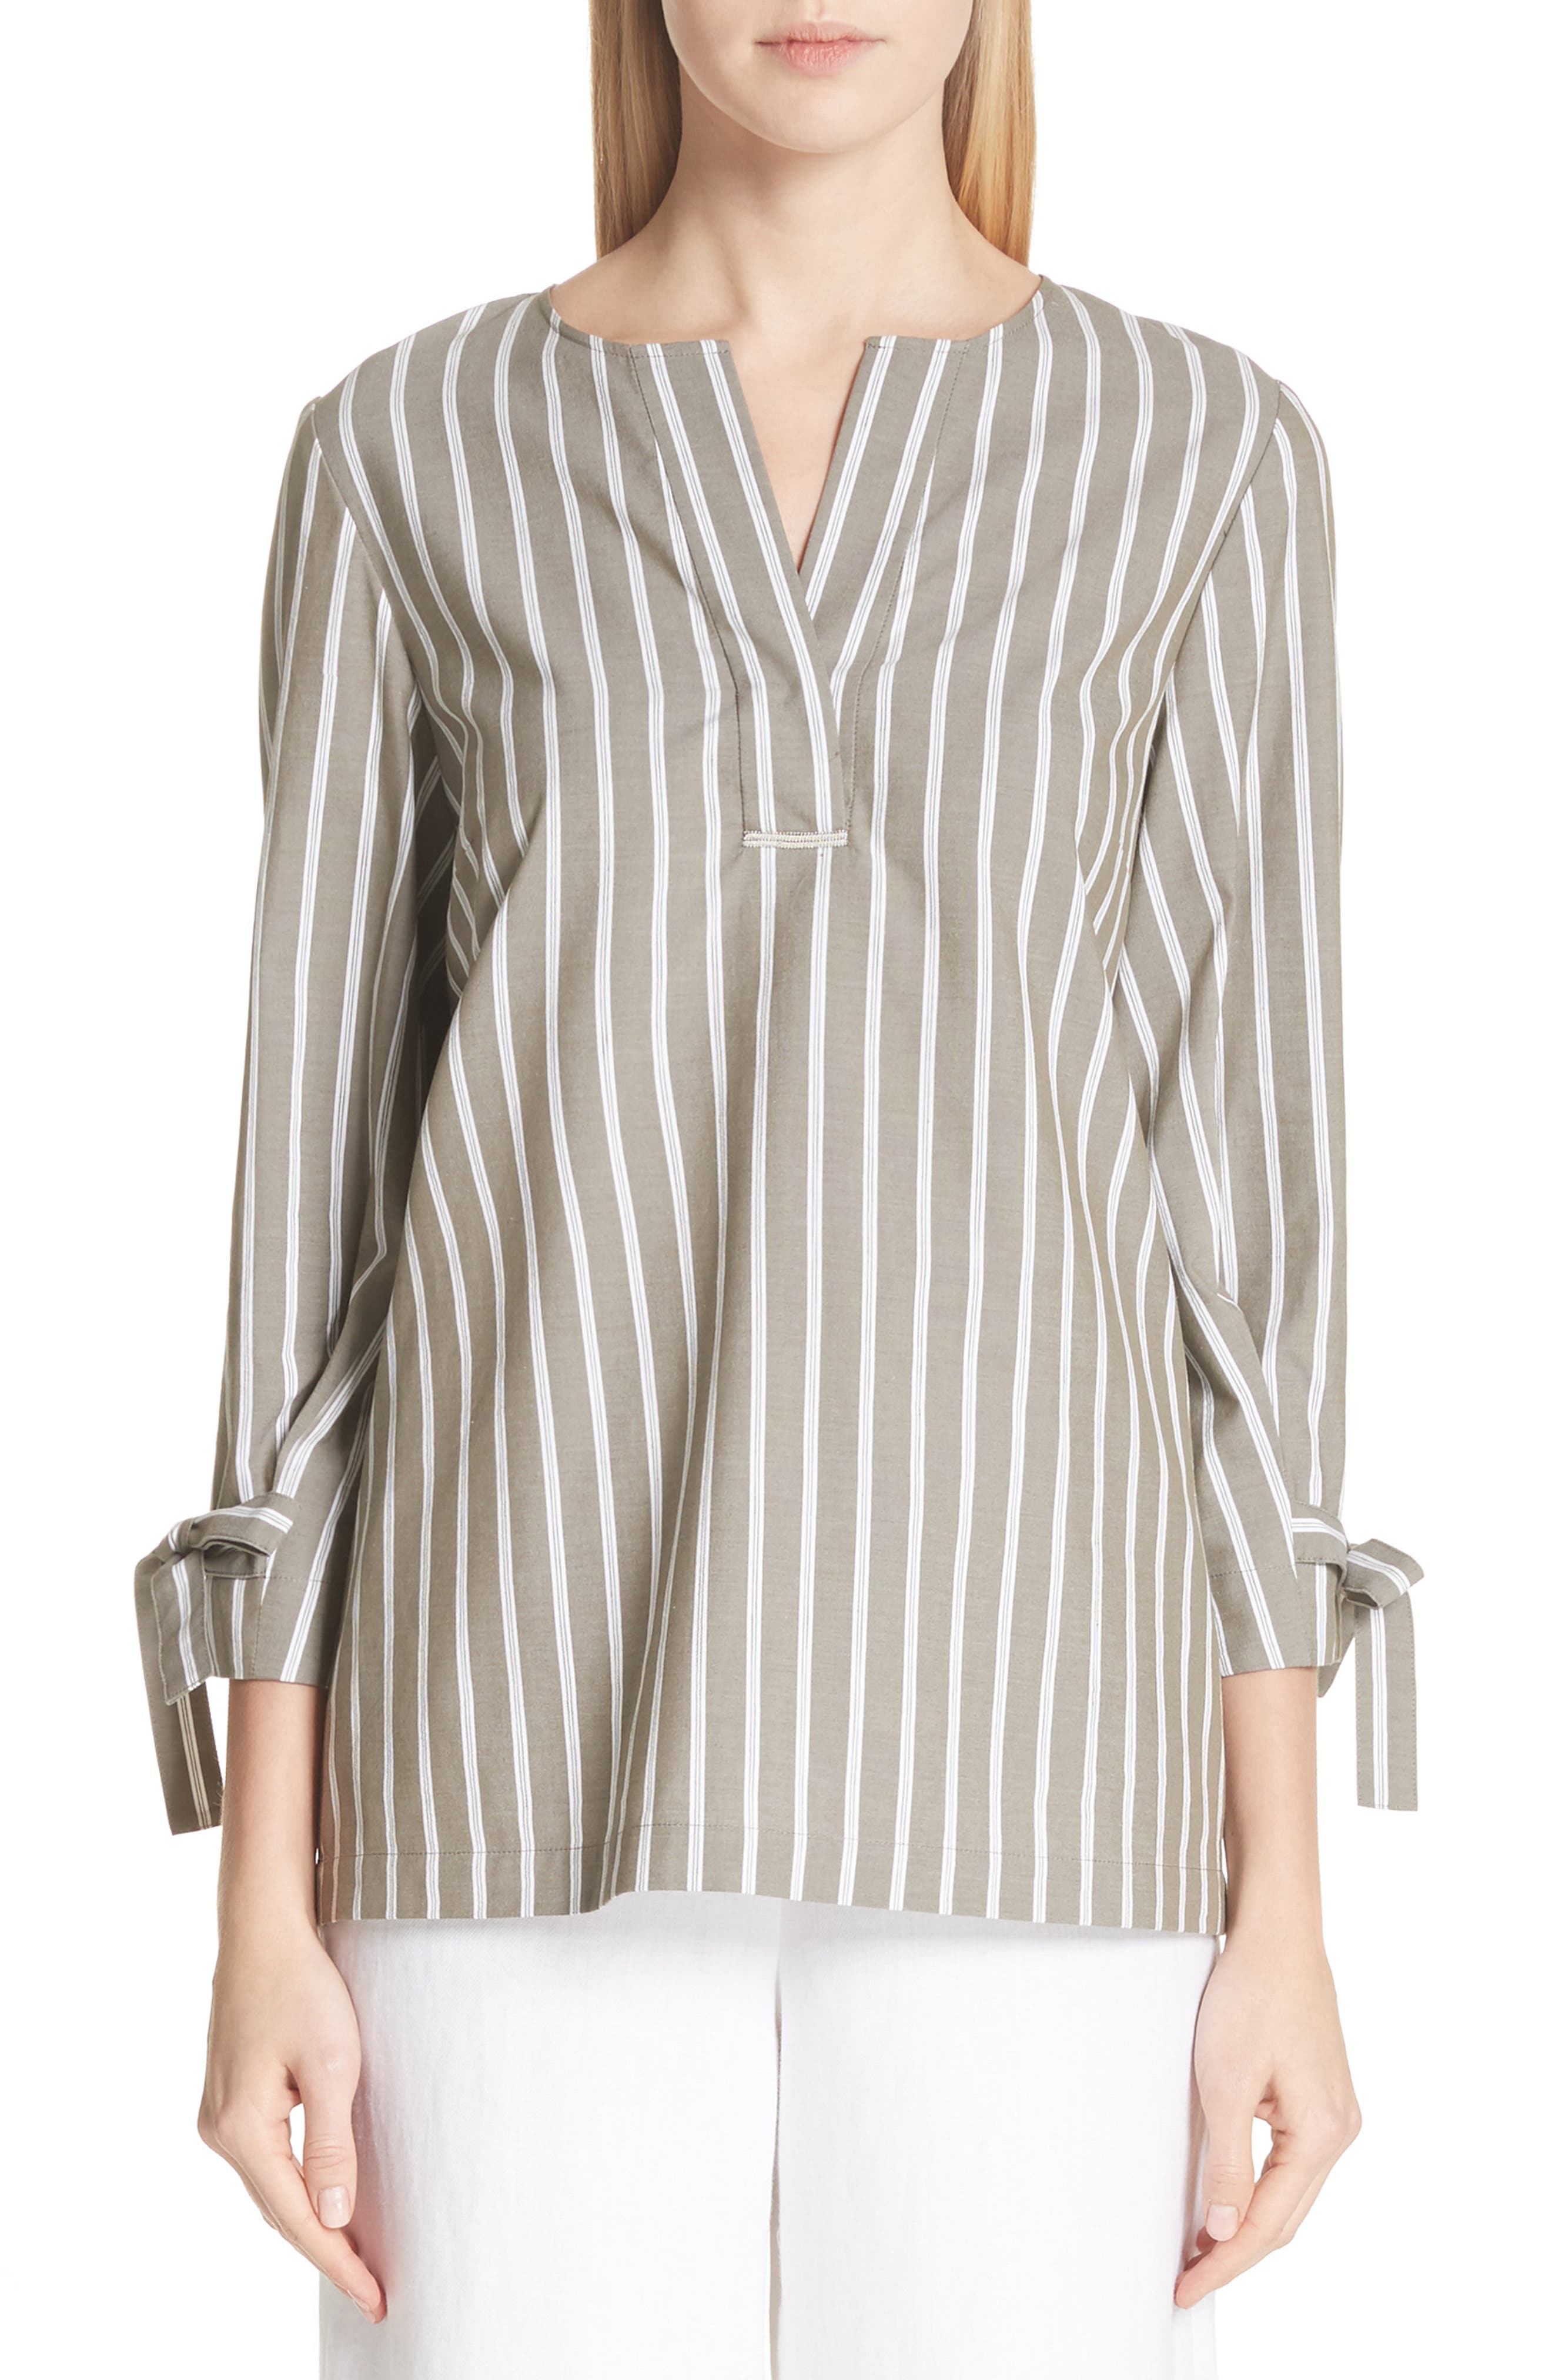 Kendra Stripe Tie Cuff Blouse,                             Main thumbnail 1, color,                             Nightingale Multi